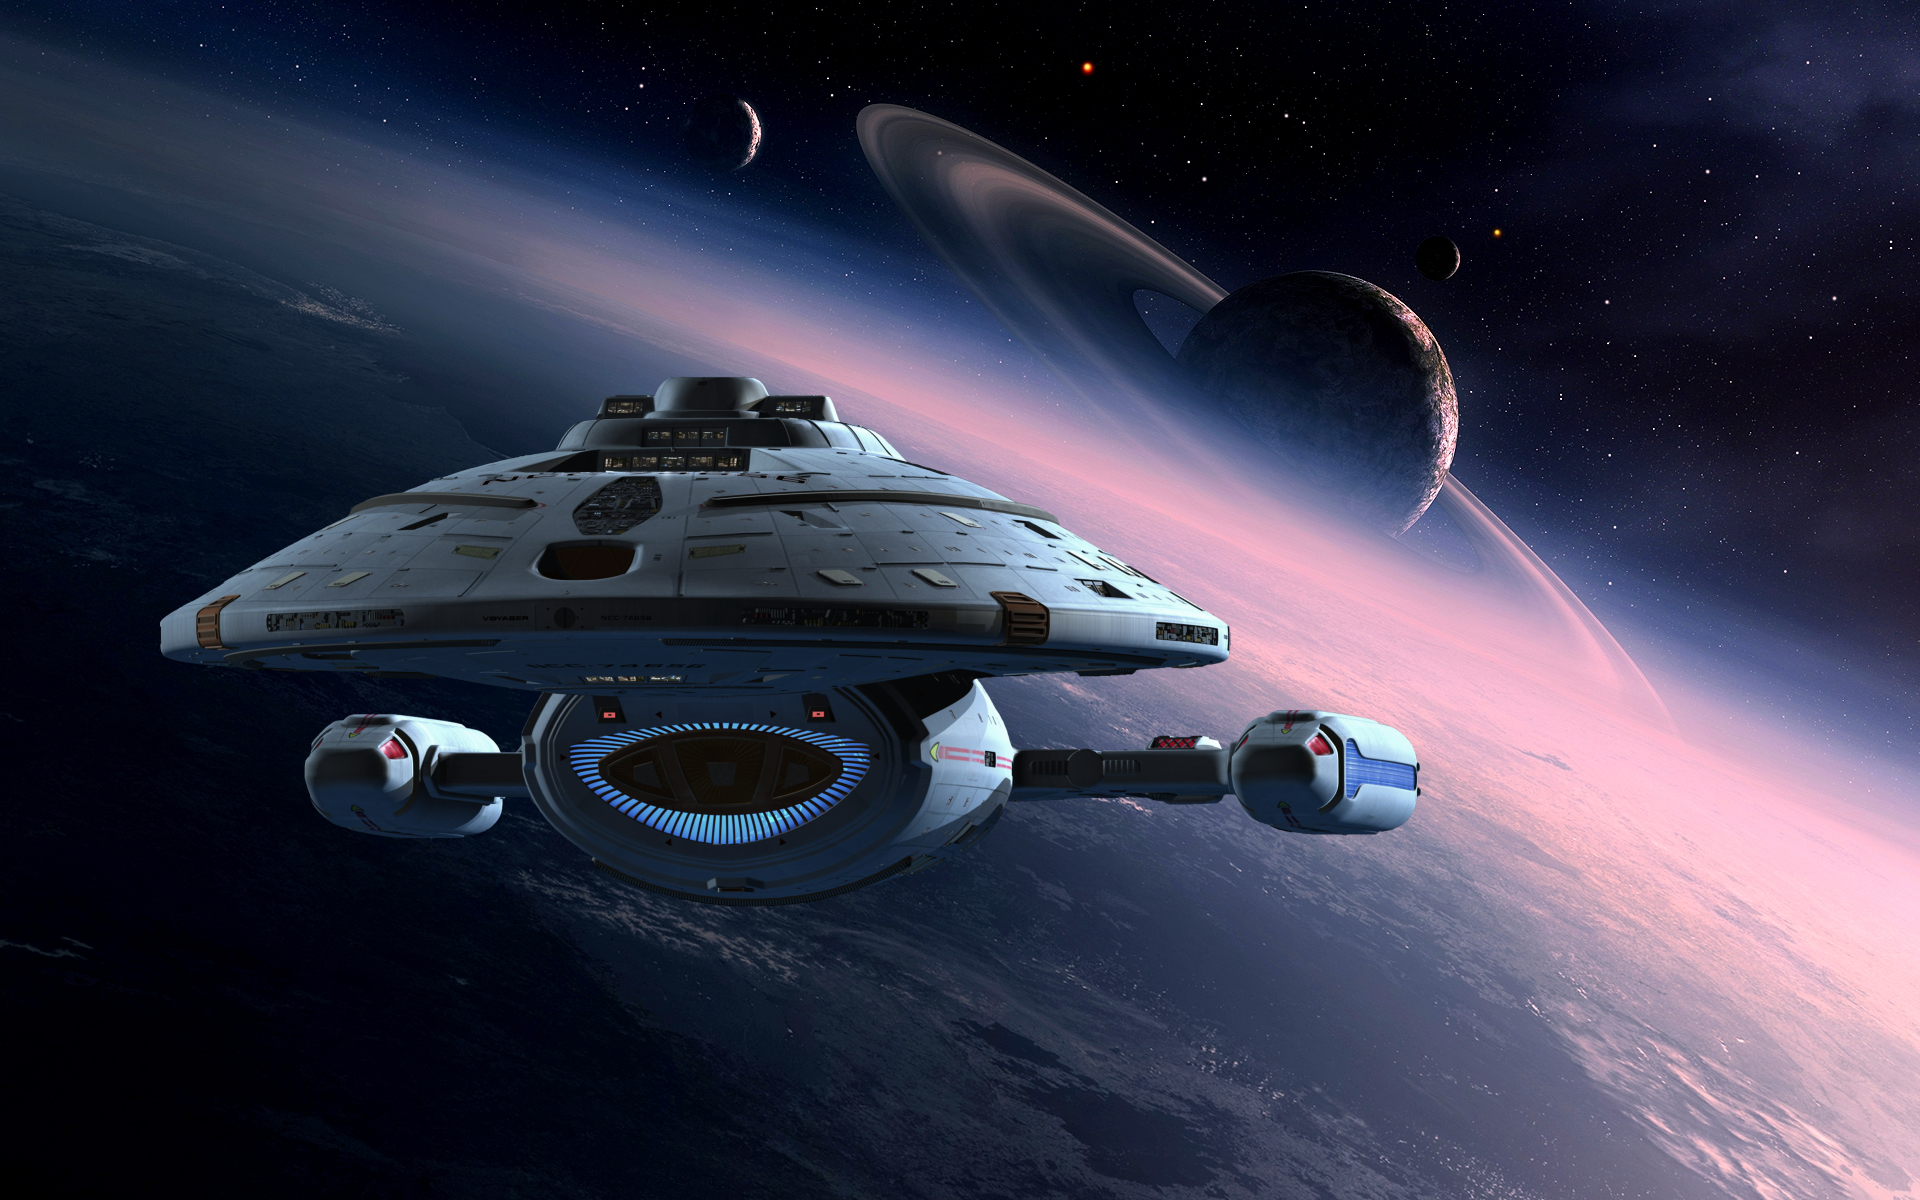 Star Trek Voyager Wallpaper High Resolution